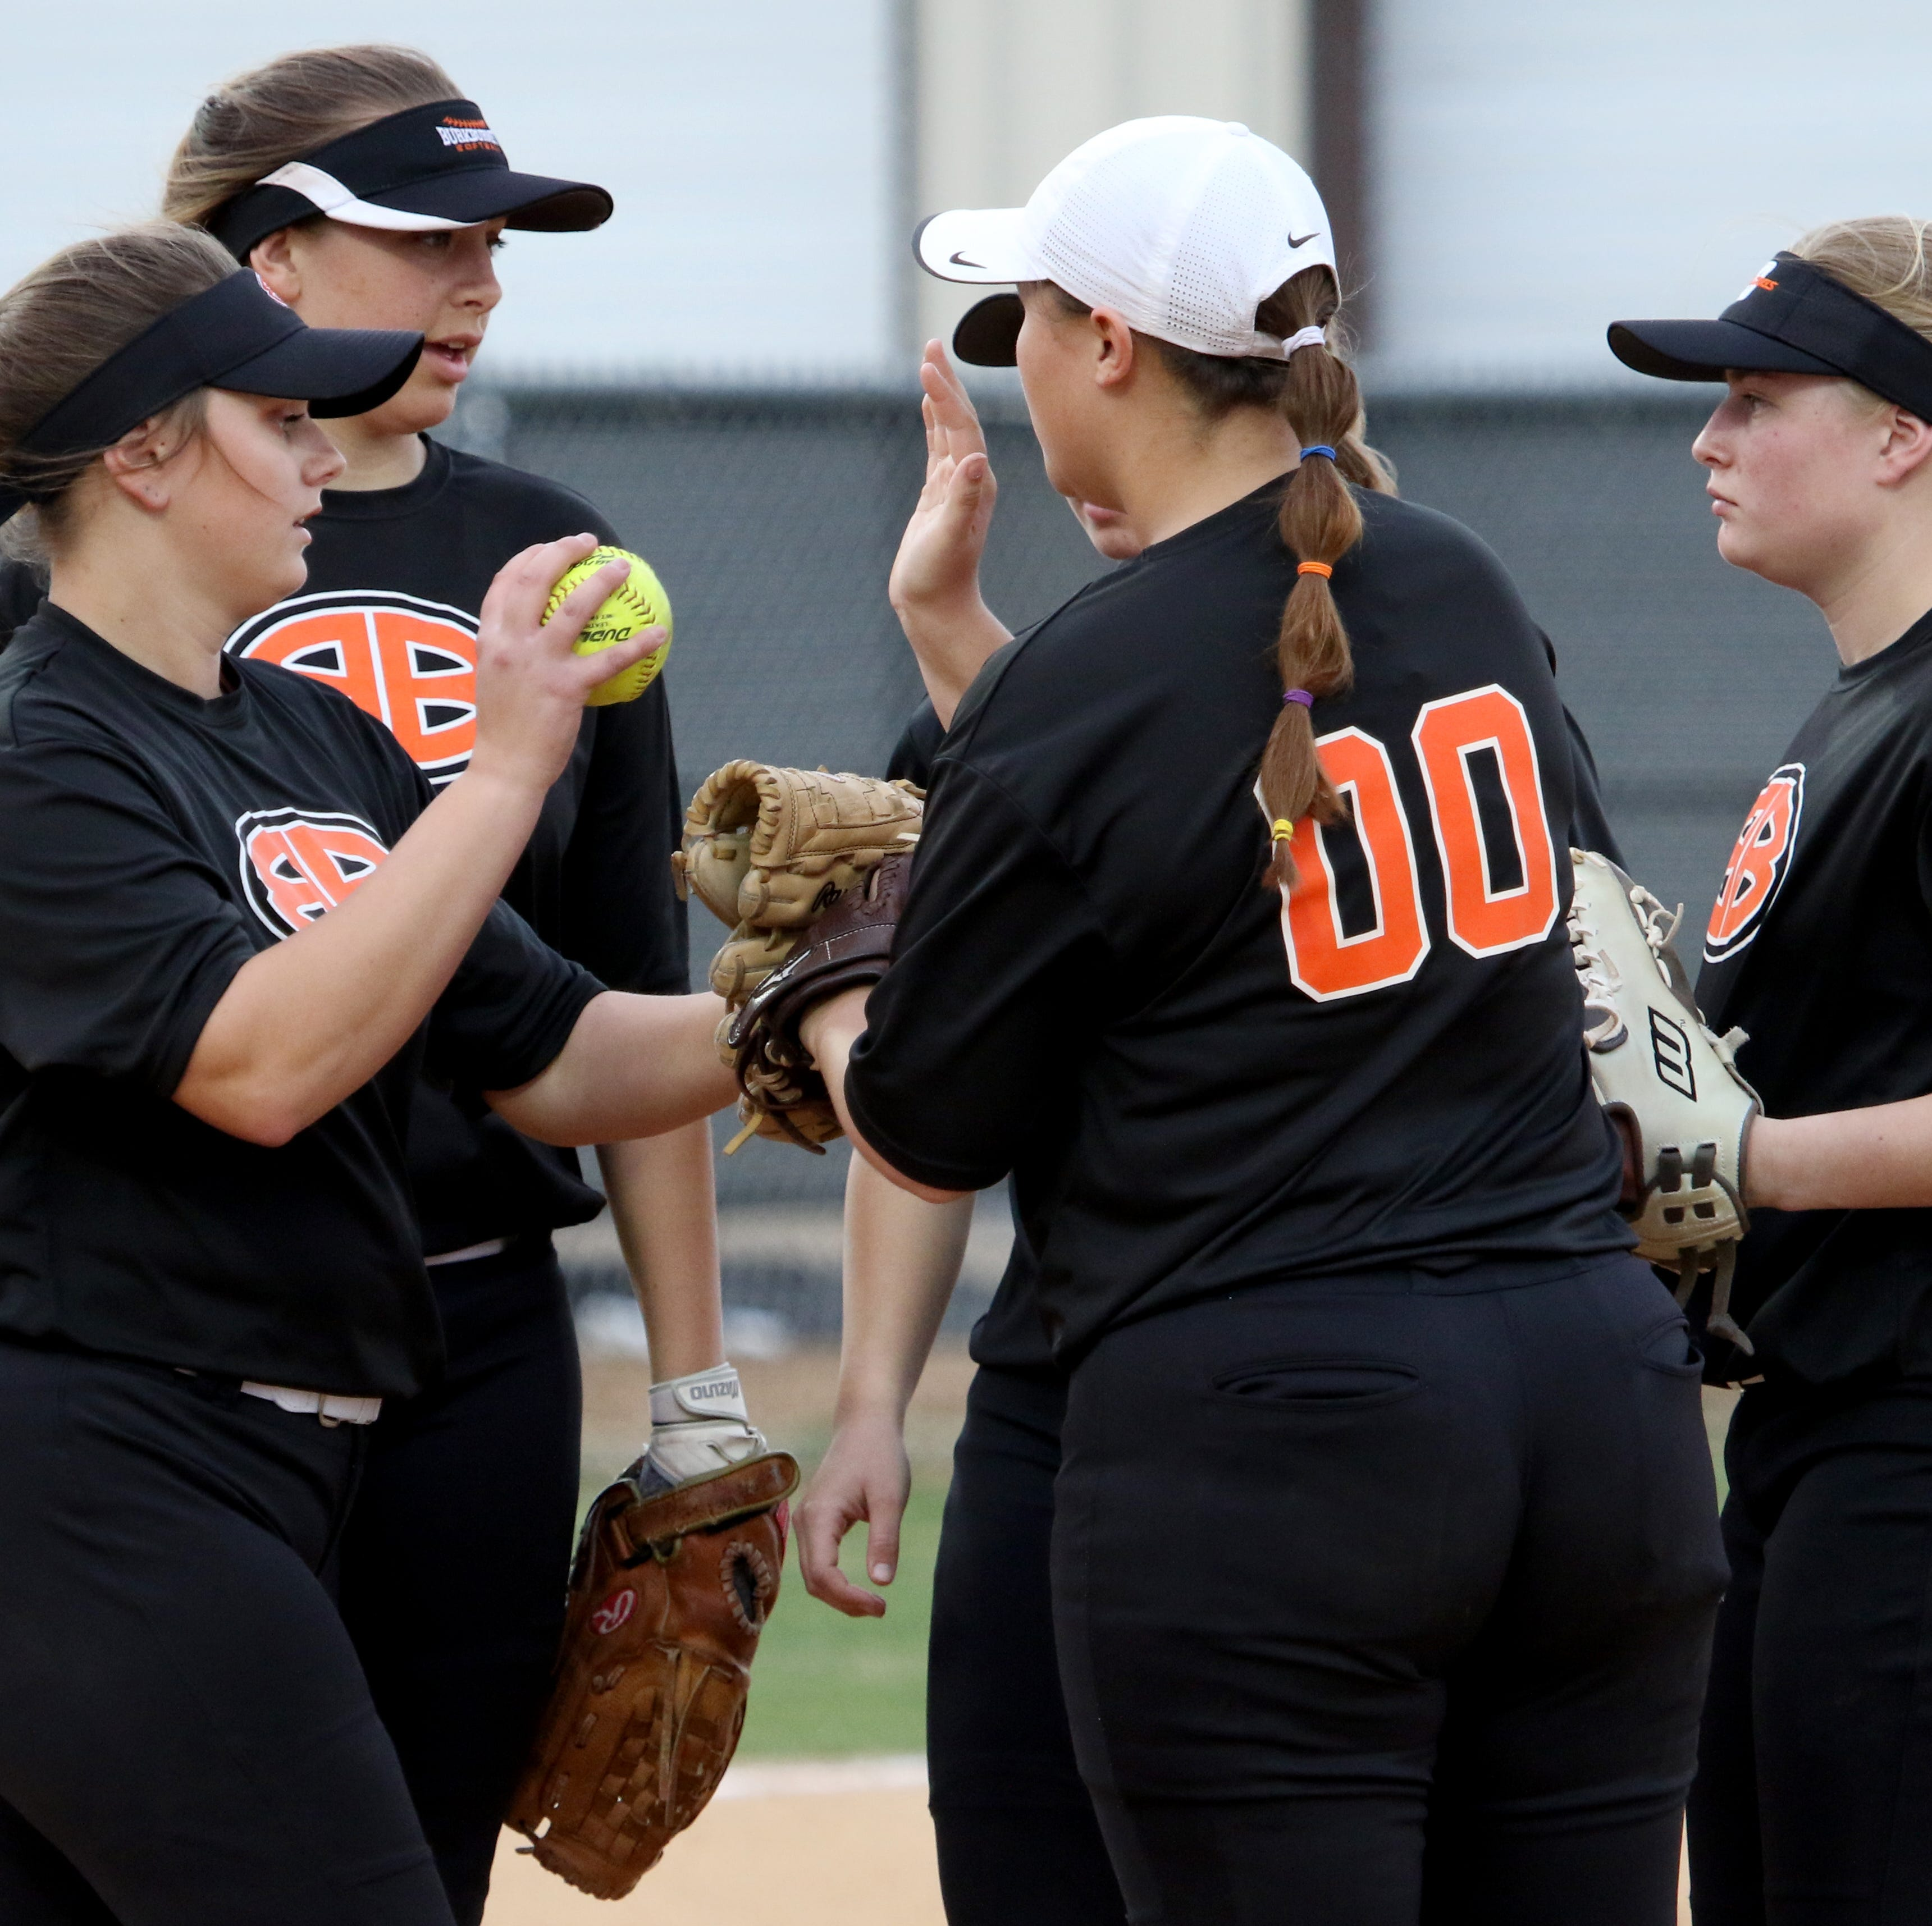 Softball playoff preview: Burkburnett thriving thanks to stronger defense